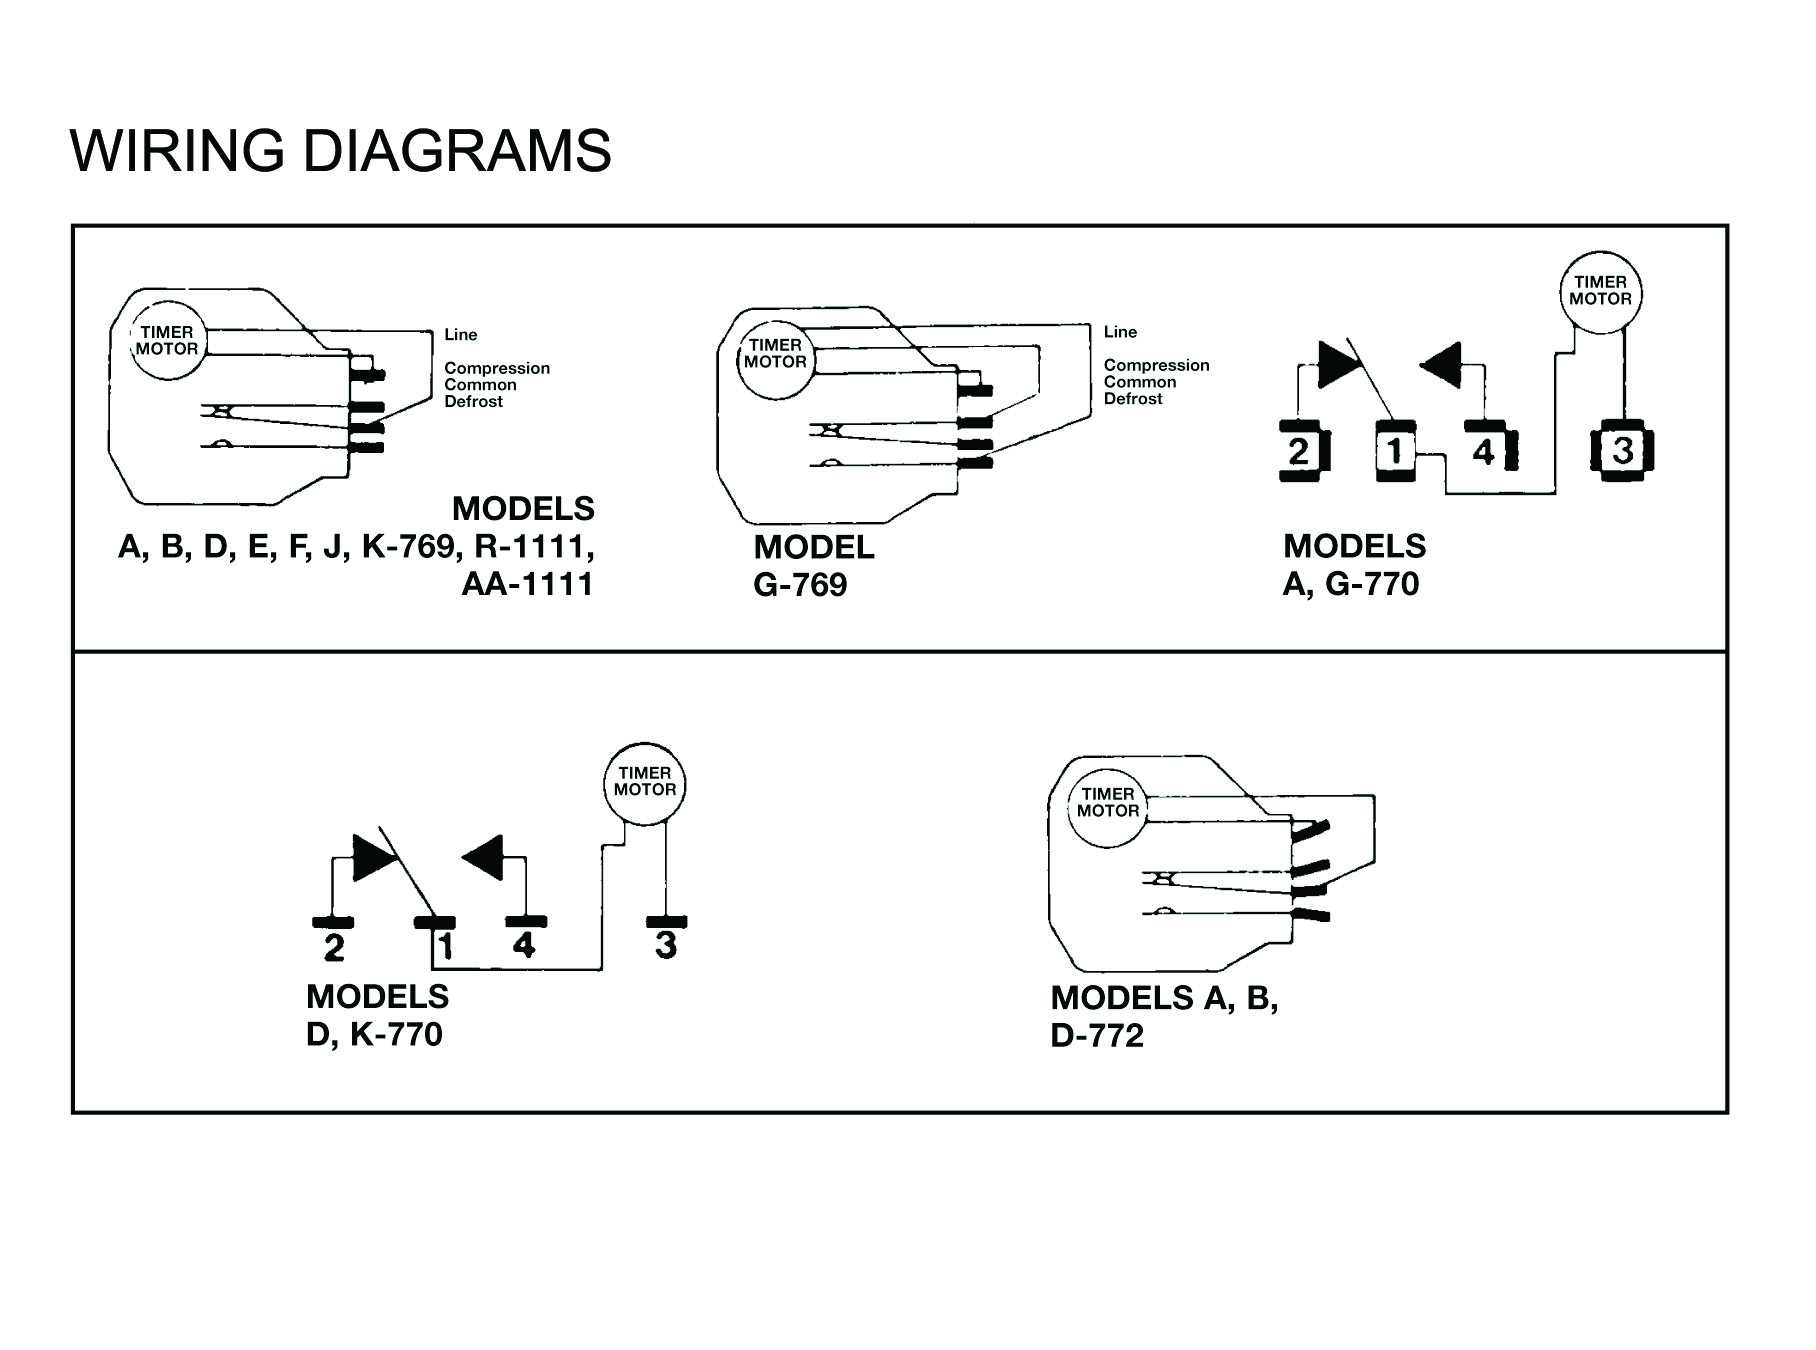 cat5 b wiring diagram cat5 image wiring diagram cat5 b wiring diagram solidfonts on cat5 b wiring diagram